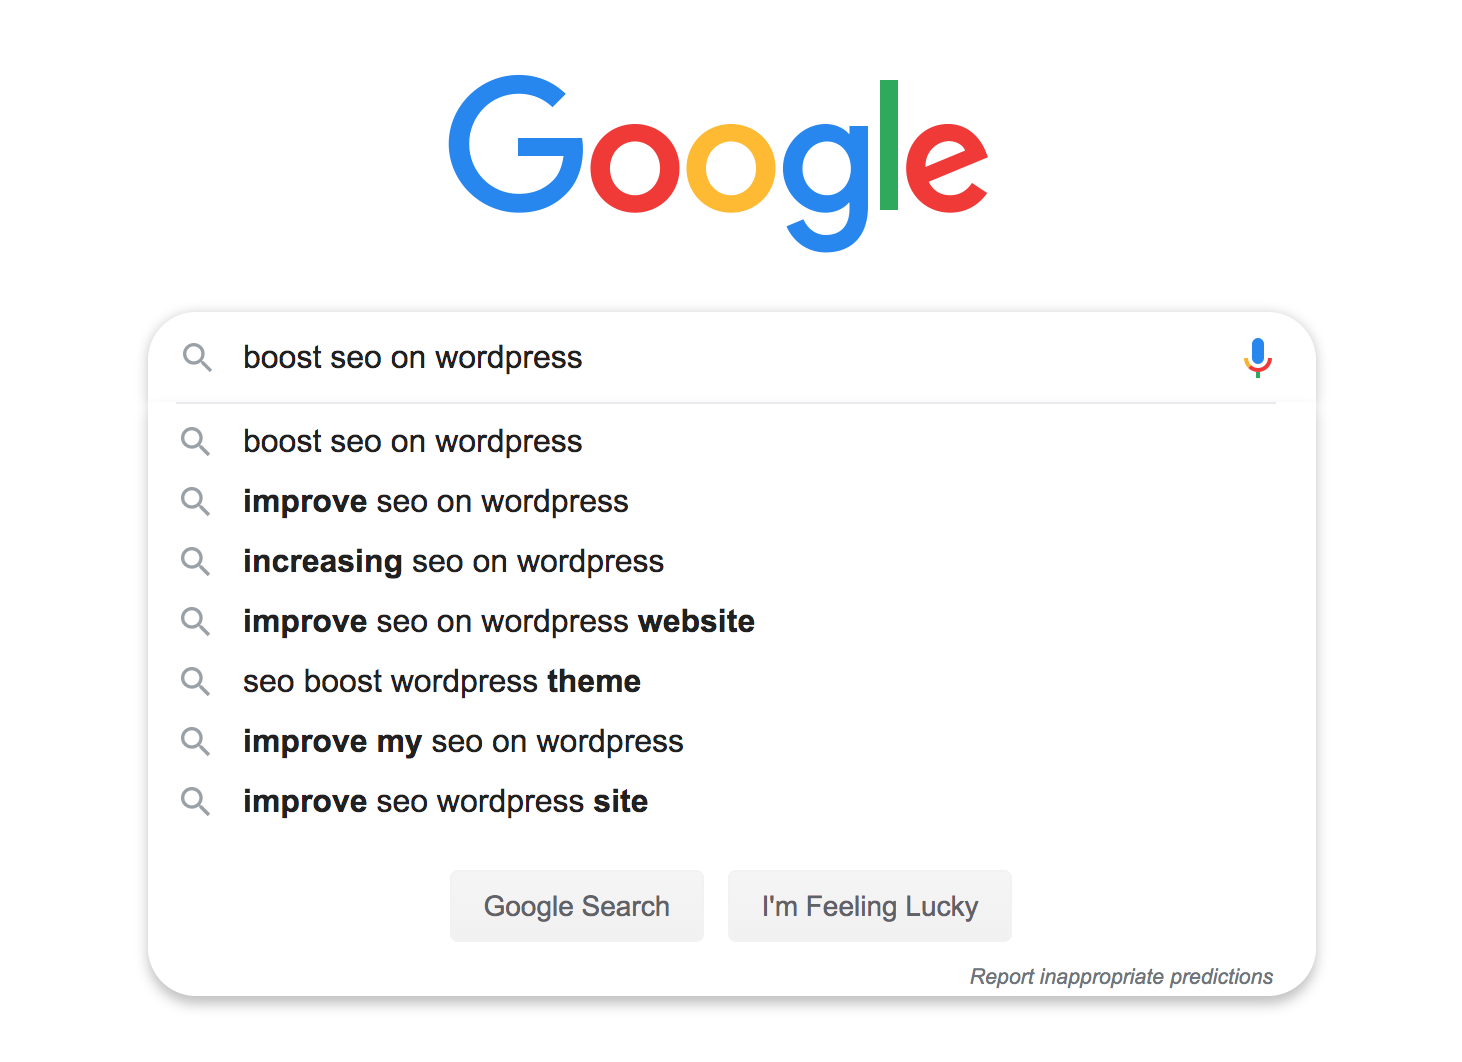 Keywords used in a Google search